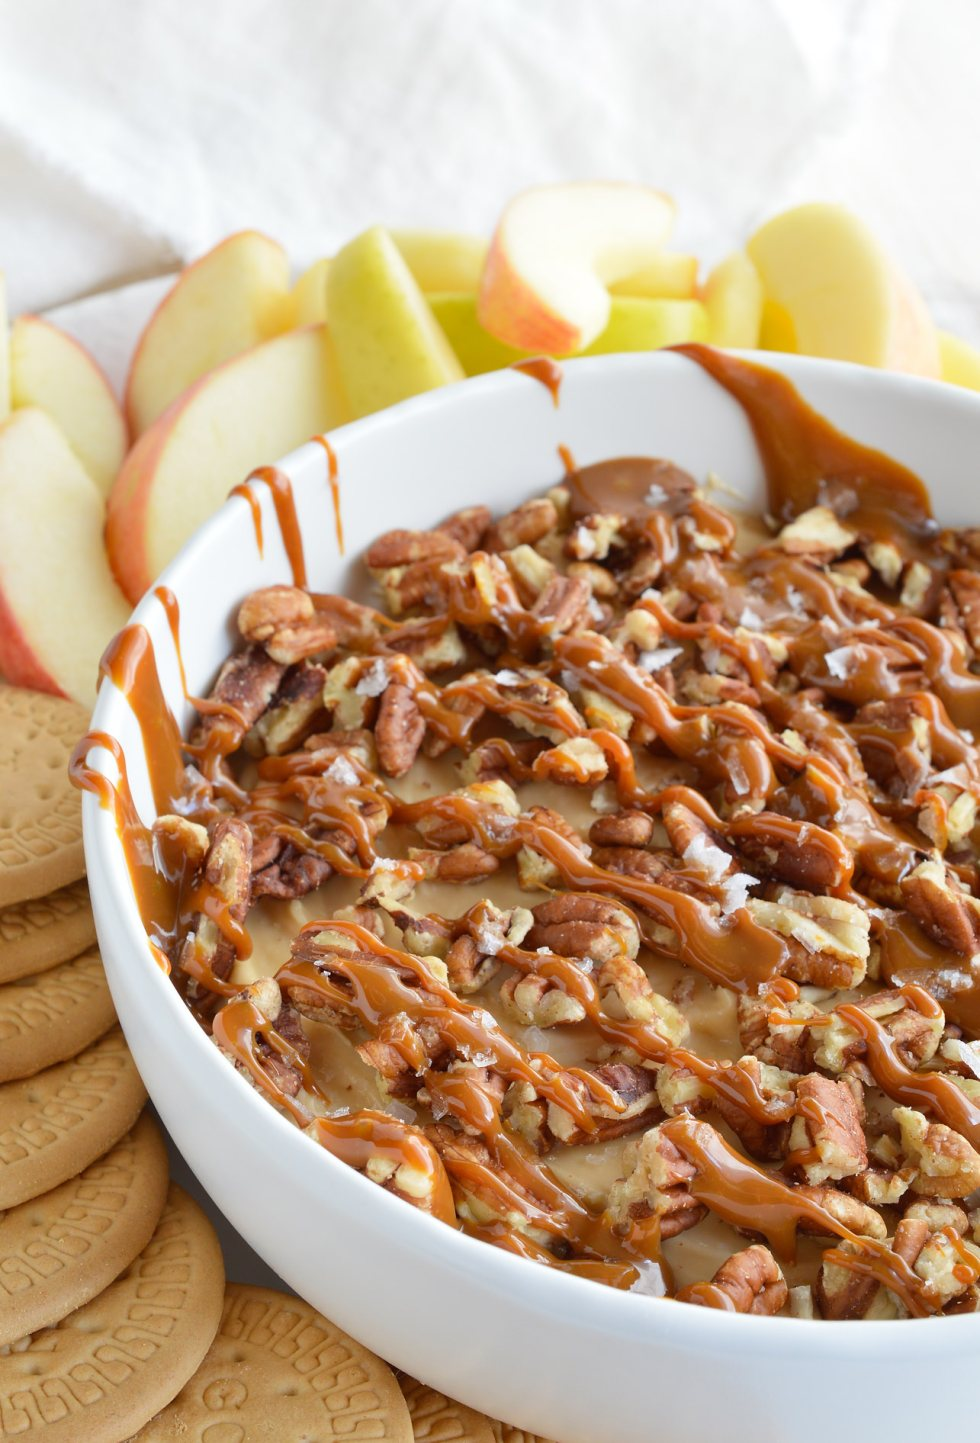 cheesecake dip drizzled with caramel sauce